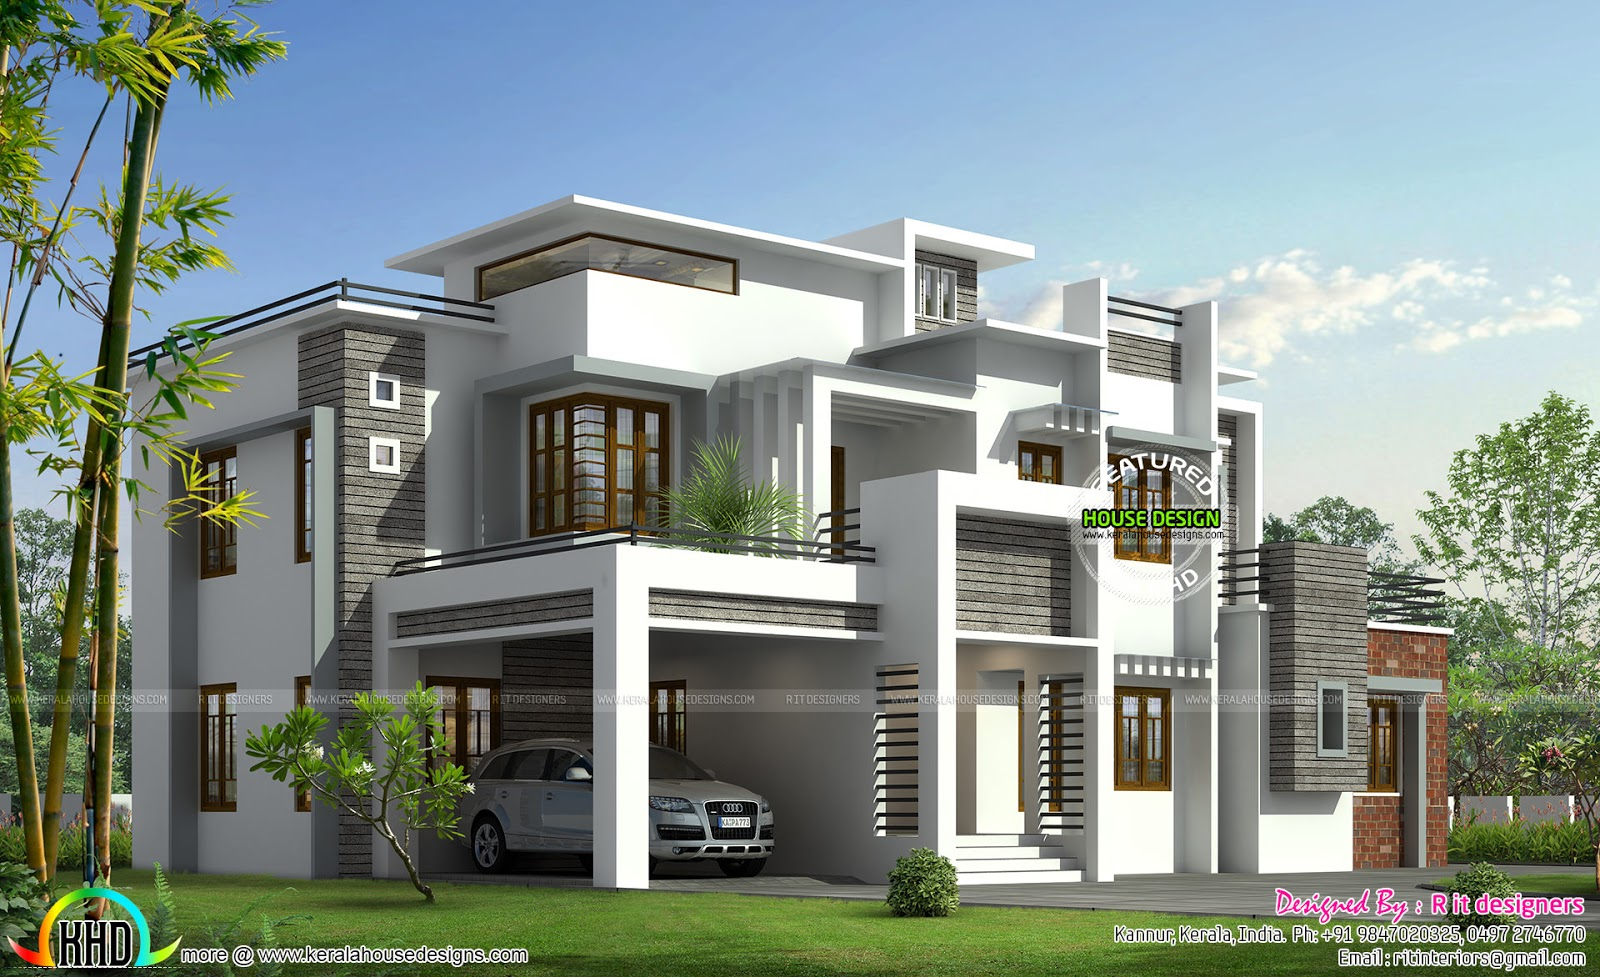 Box model contemporary house kerala home design and for Contemporary style home plans